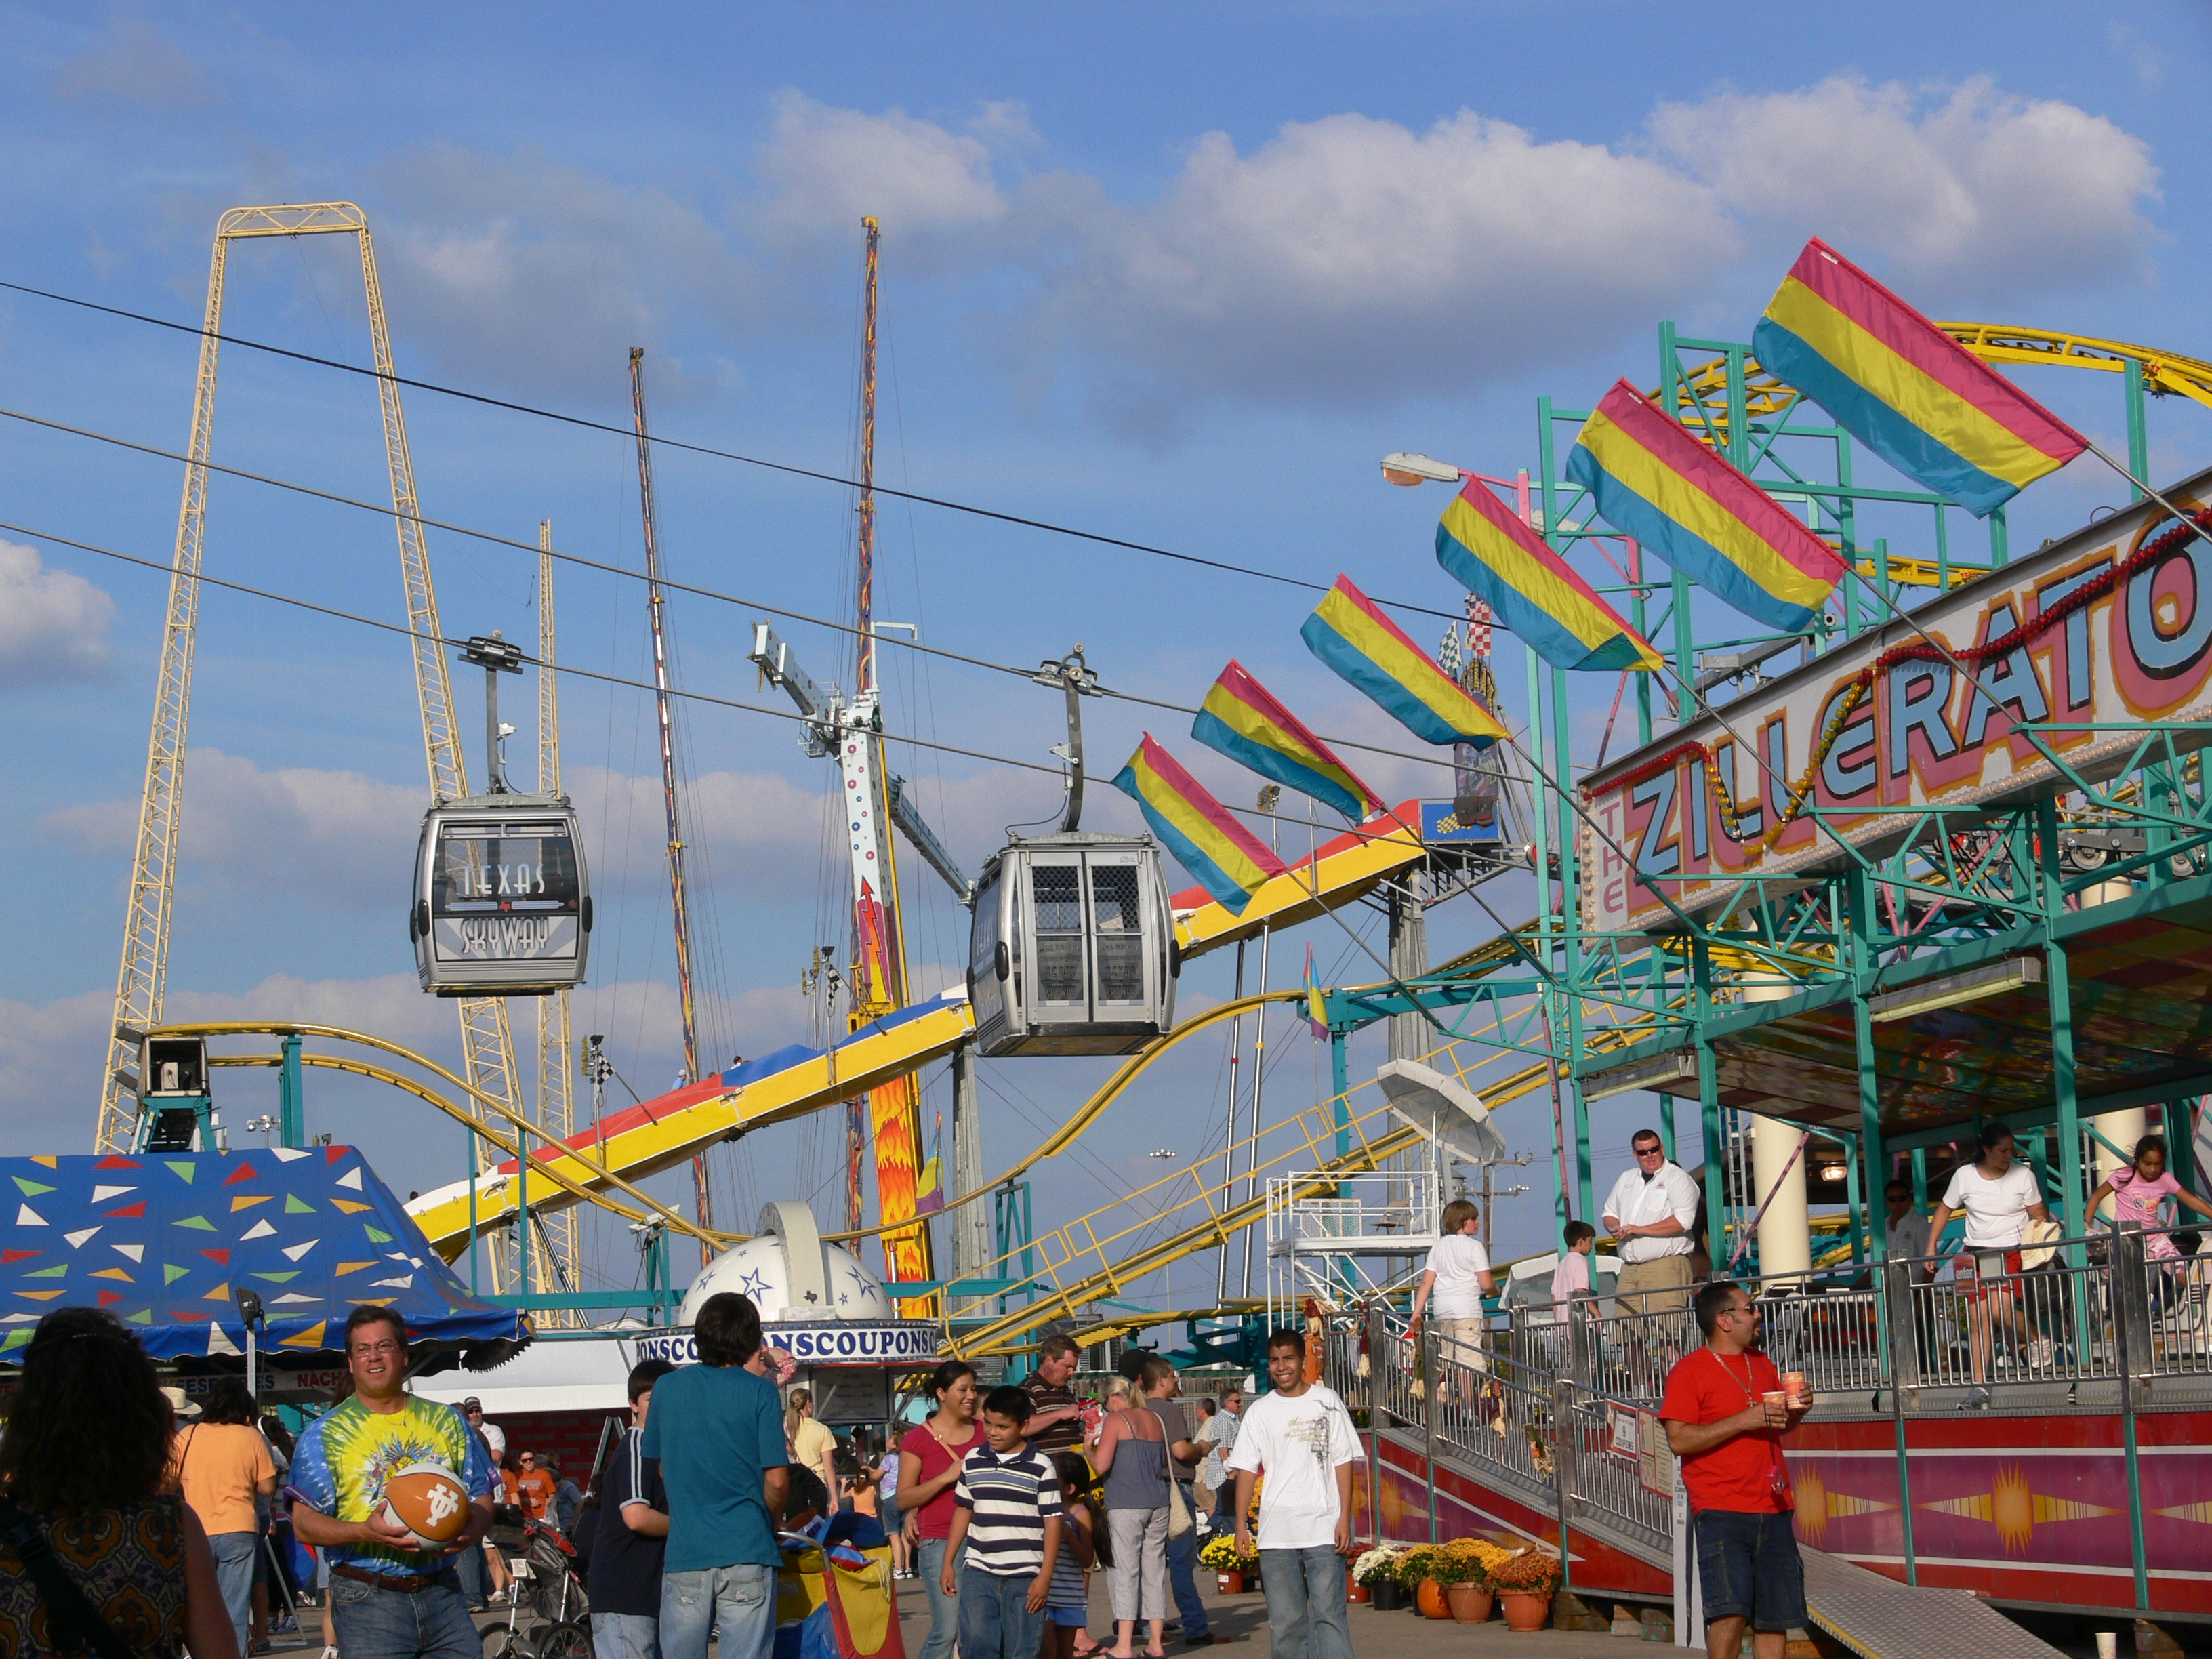 http://upload.wikimedia.org/wikipedia/commons/9/93/Texas_State_Fair_Skyway_2.jpg